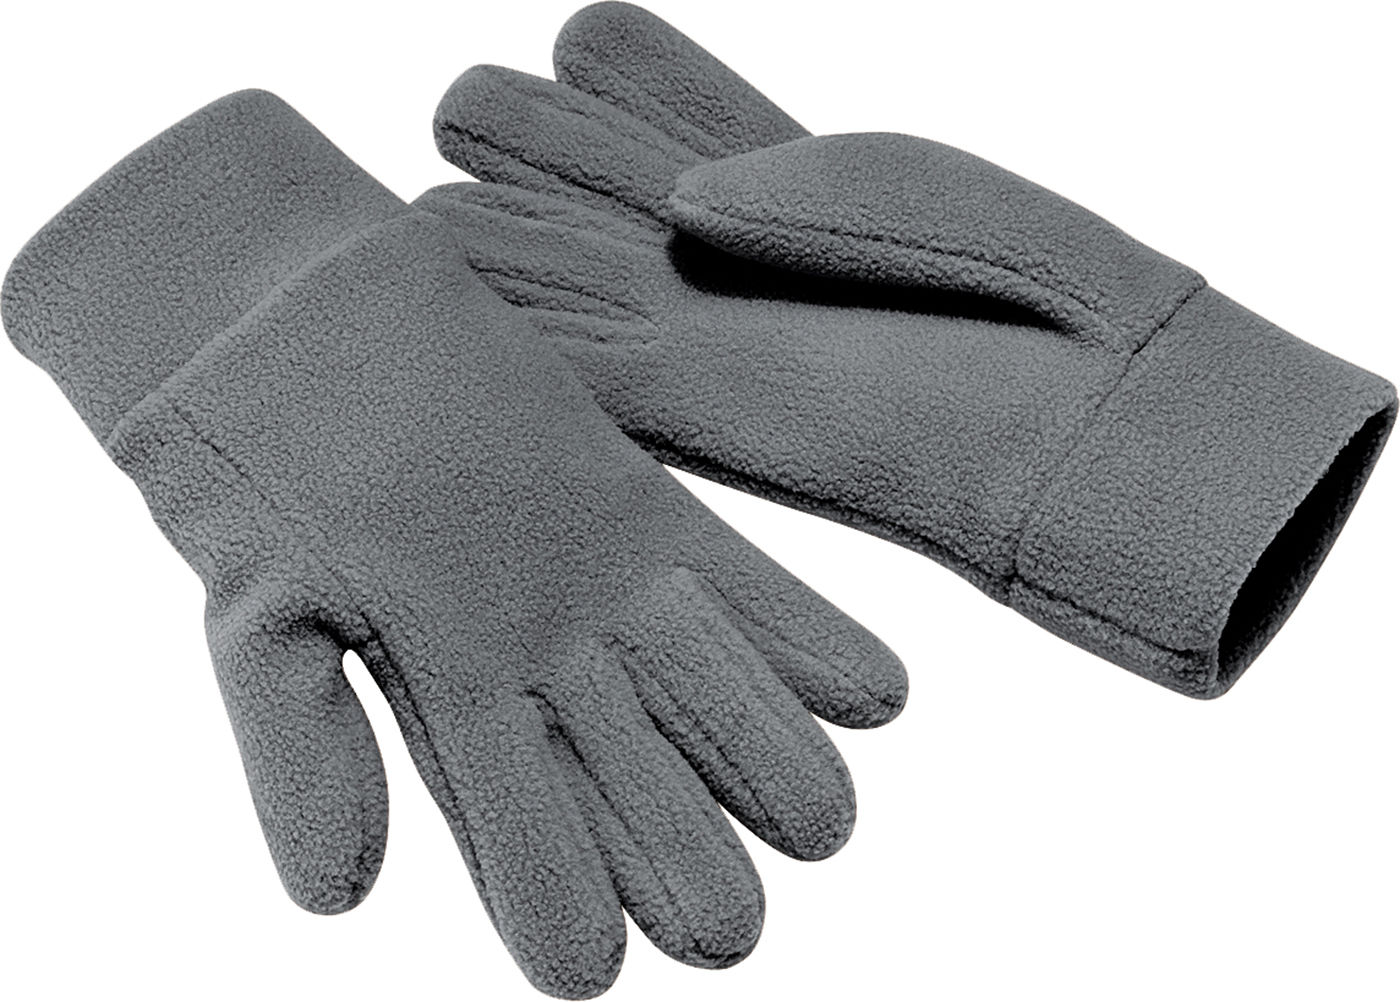 SupraFleece Adult Gloves - Beechfield Brand  - Select Size